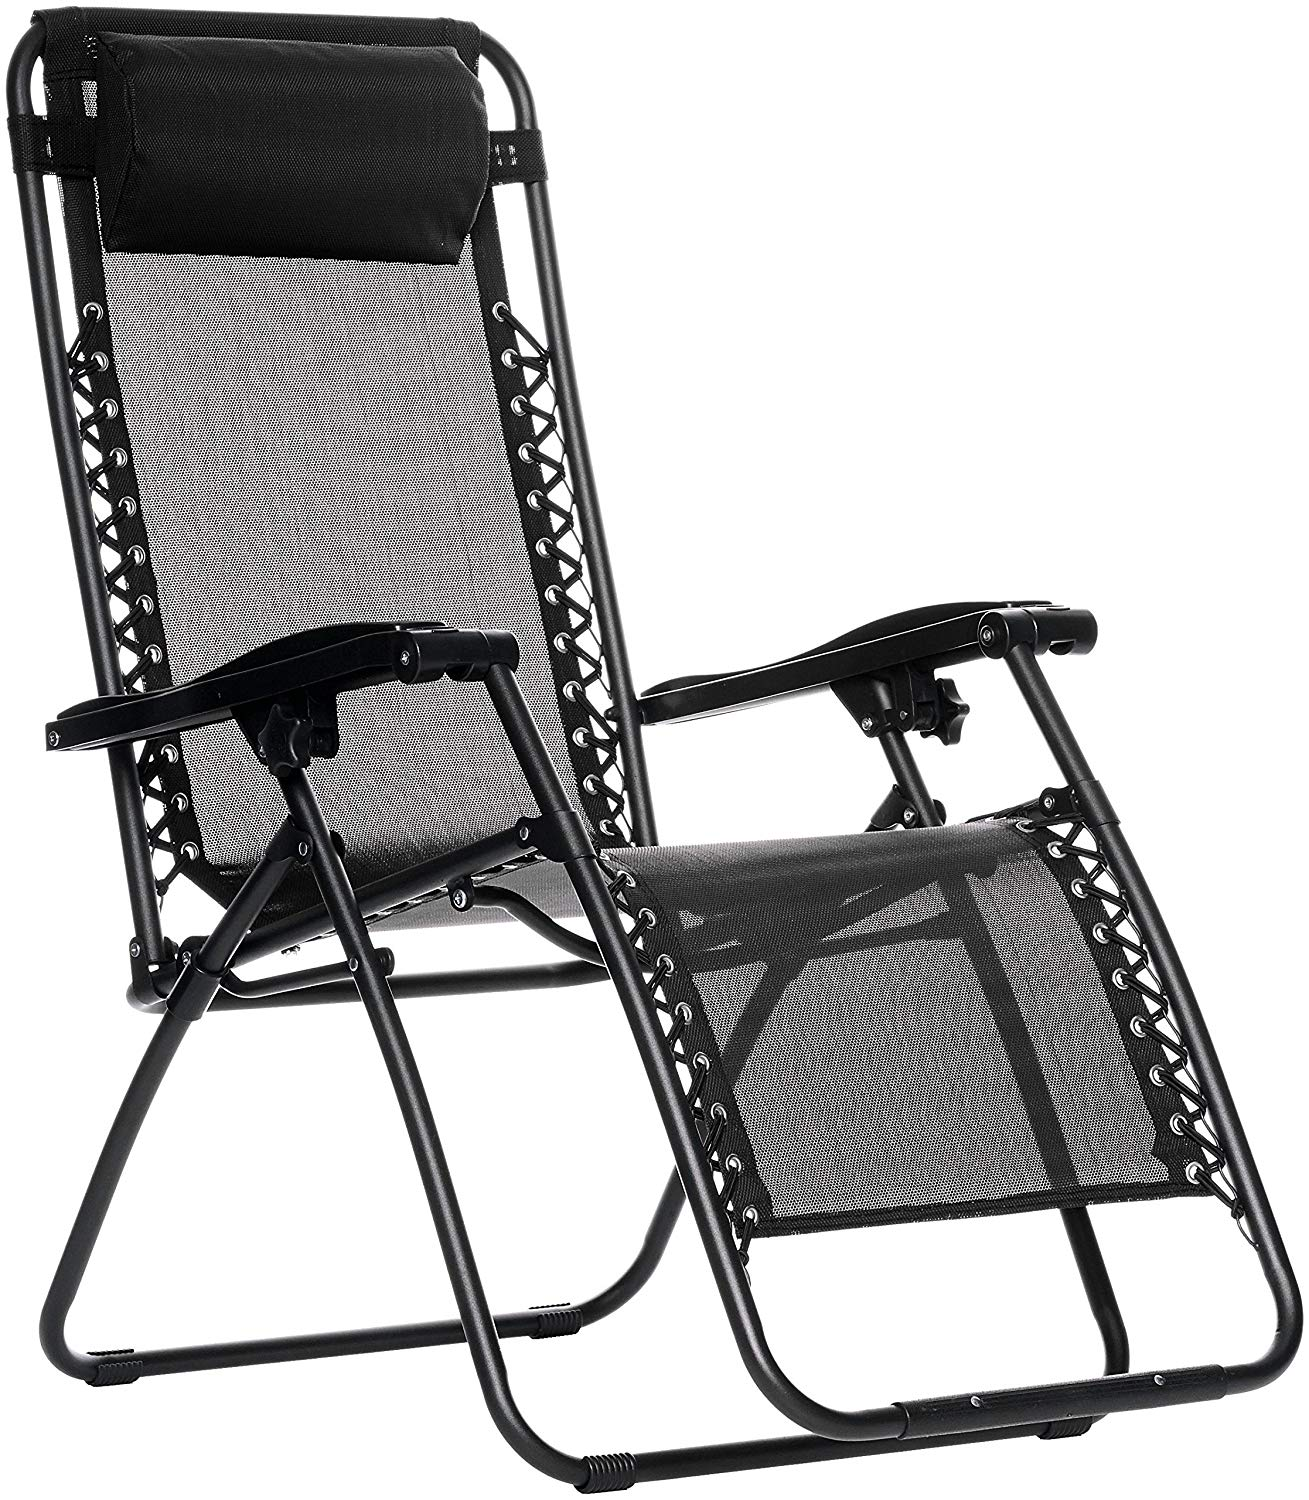 Top 10 Best Reclining Camping Chairs 2021 Reviews 4